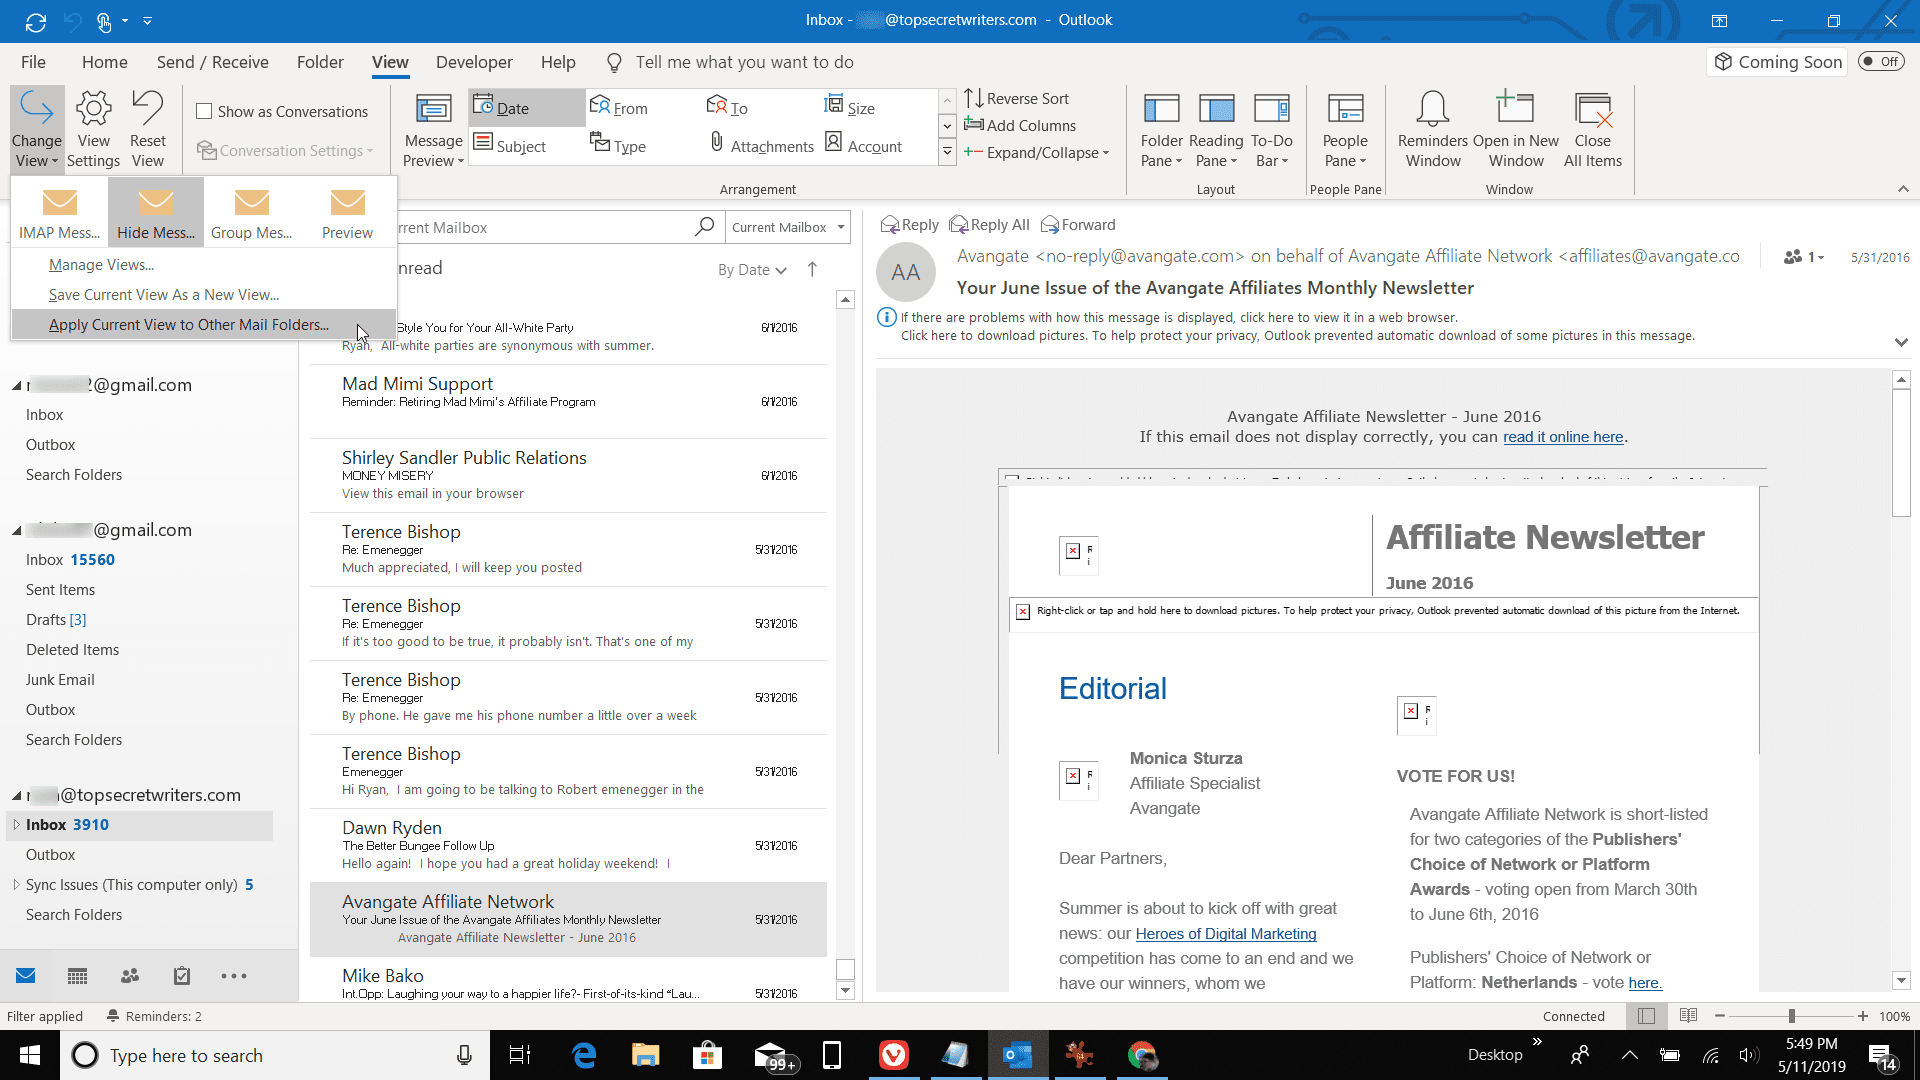 Screenshot of Apply Current View in Outlook